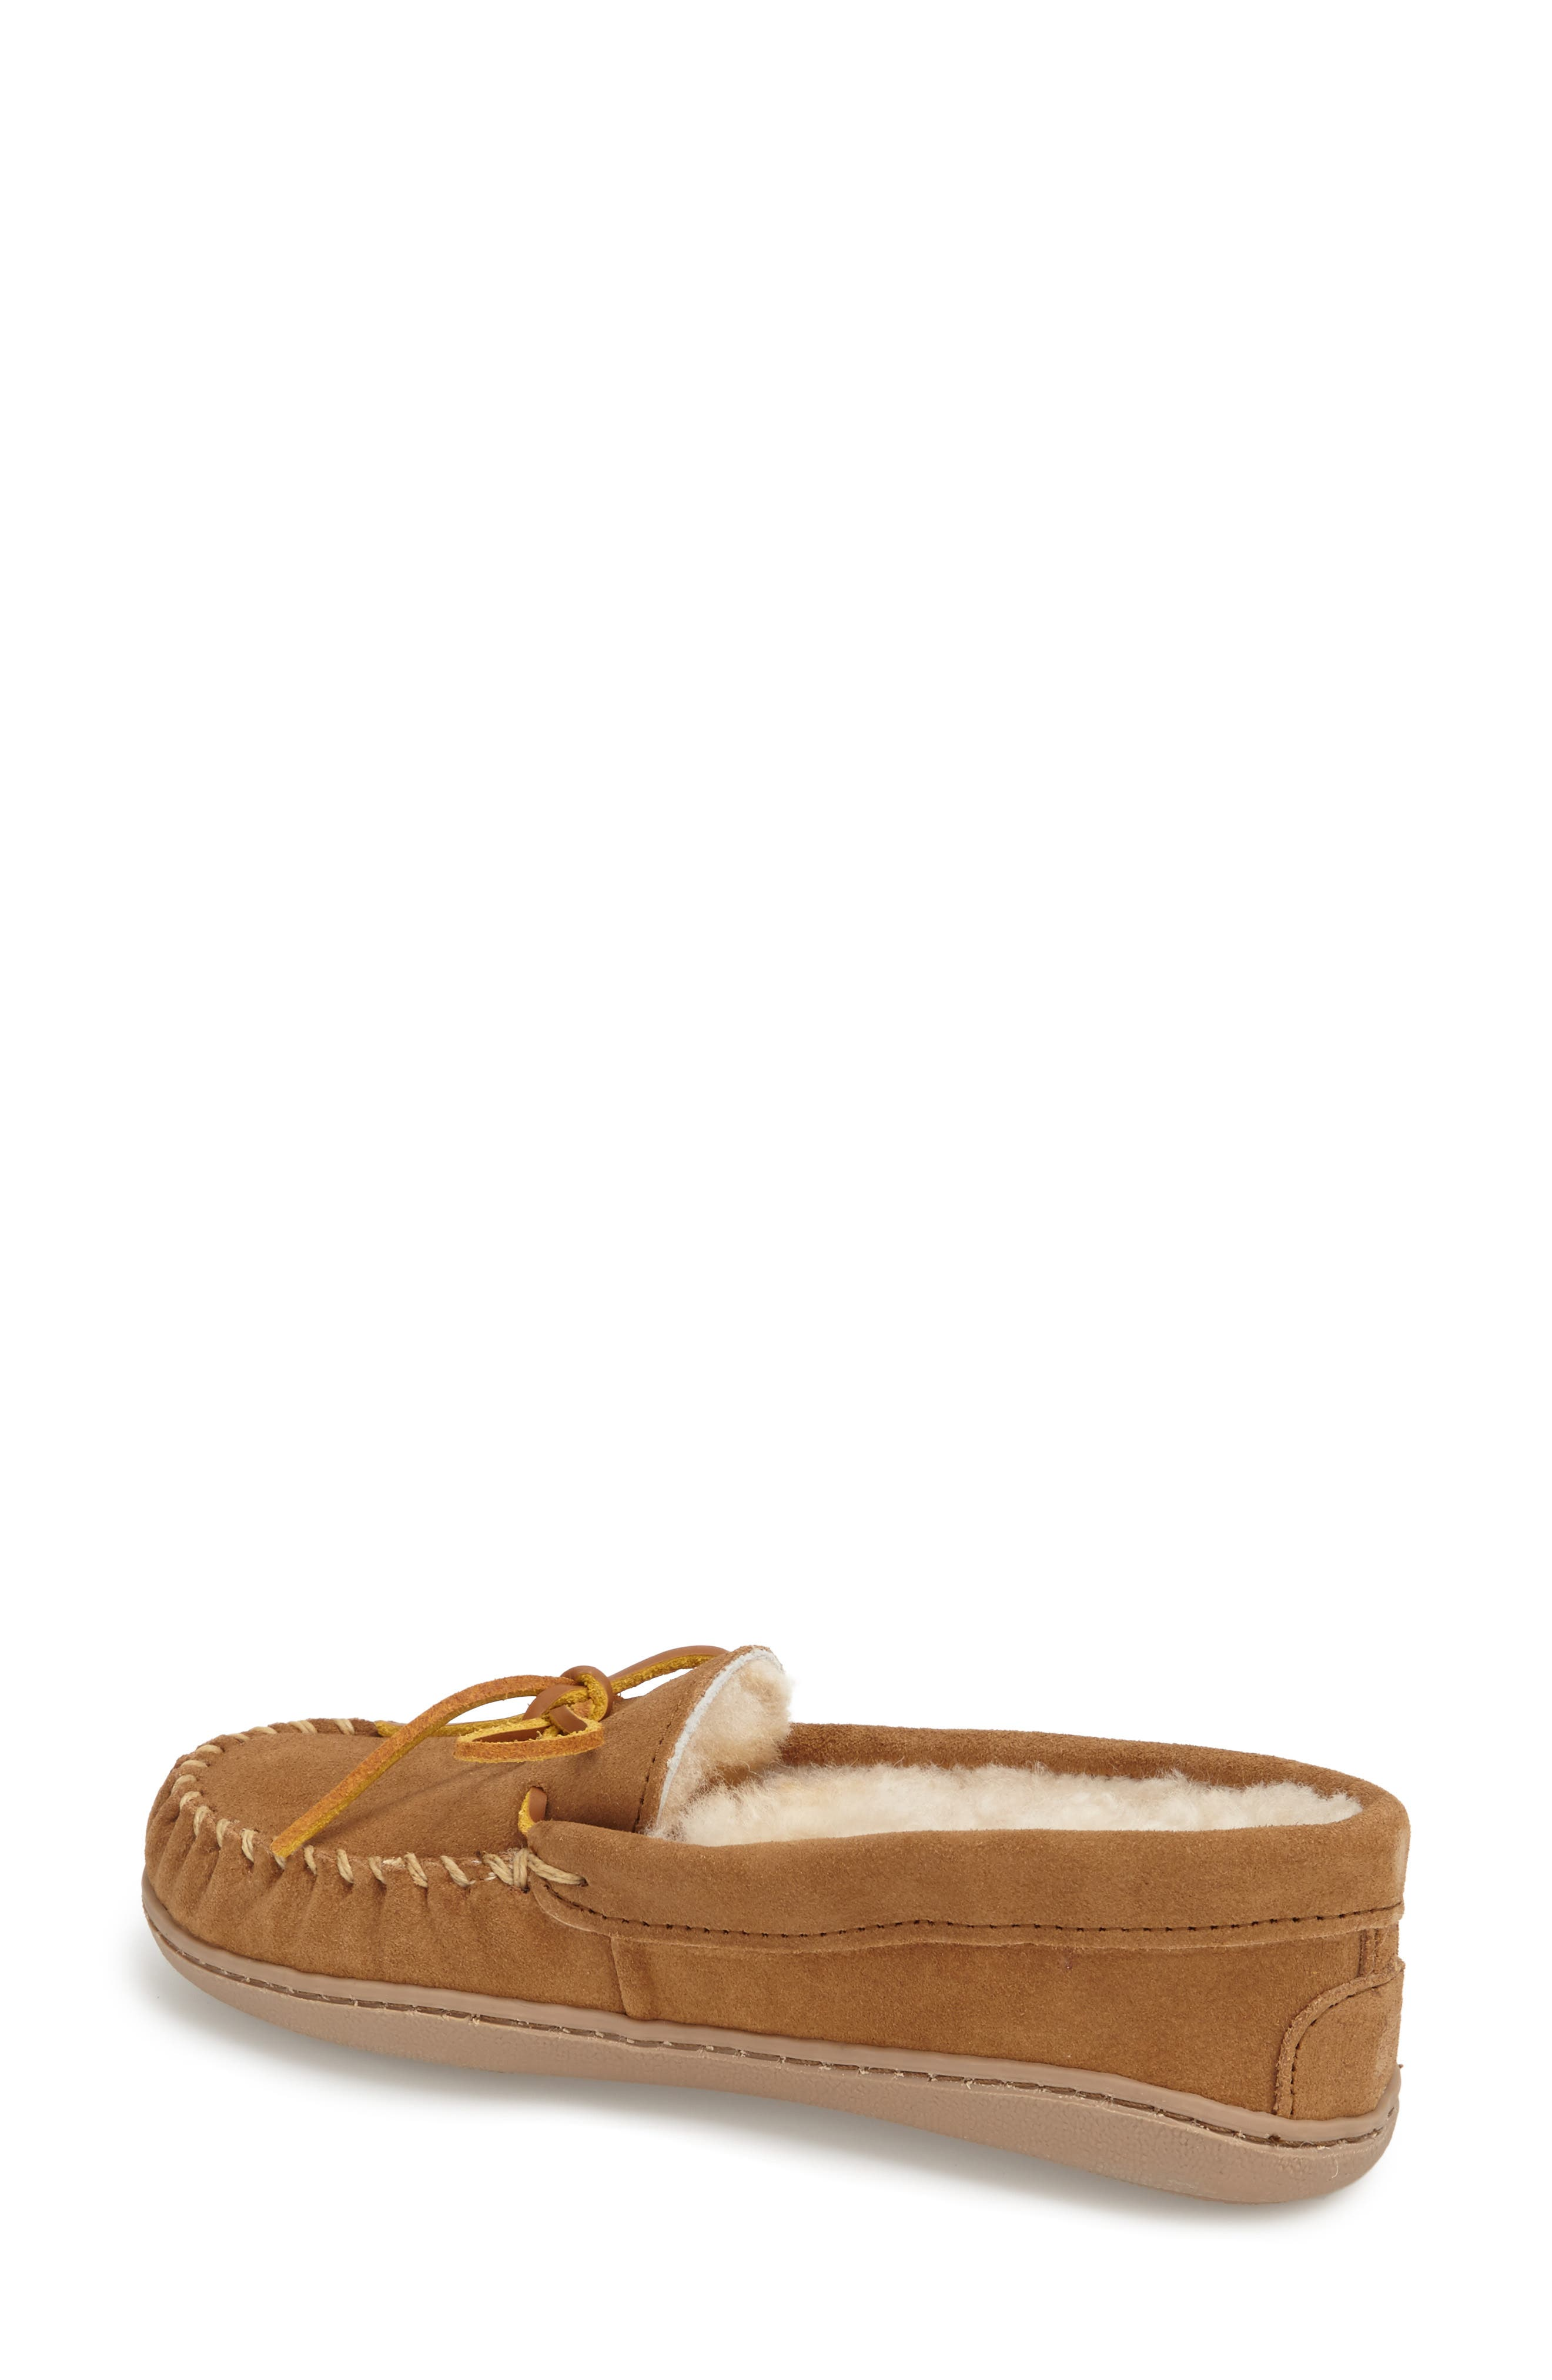 MINNETONKA, Sheepskin Hard Sole Moccasin Slipper, Alternate thumbnail 3, color, TAN SUEDE